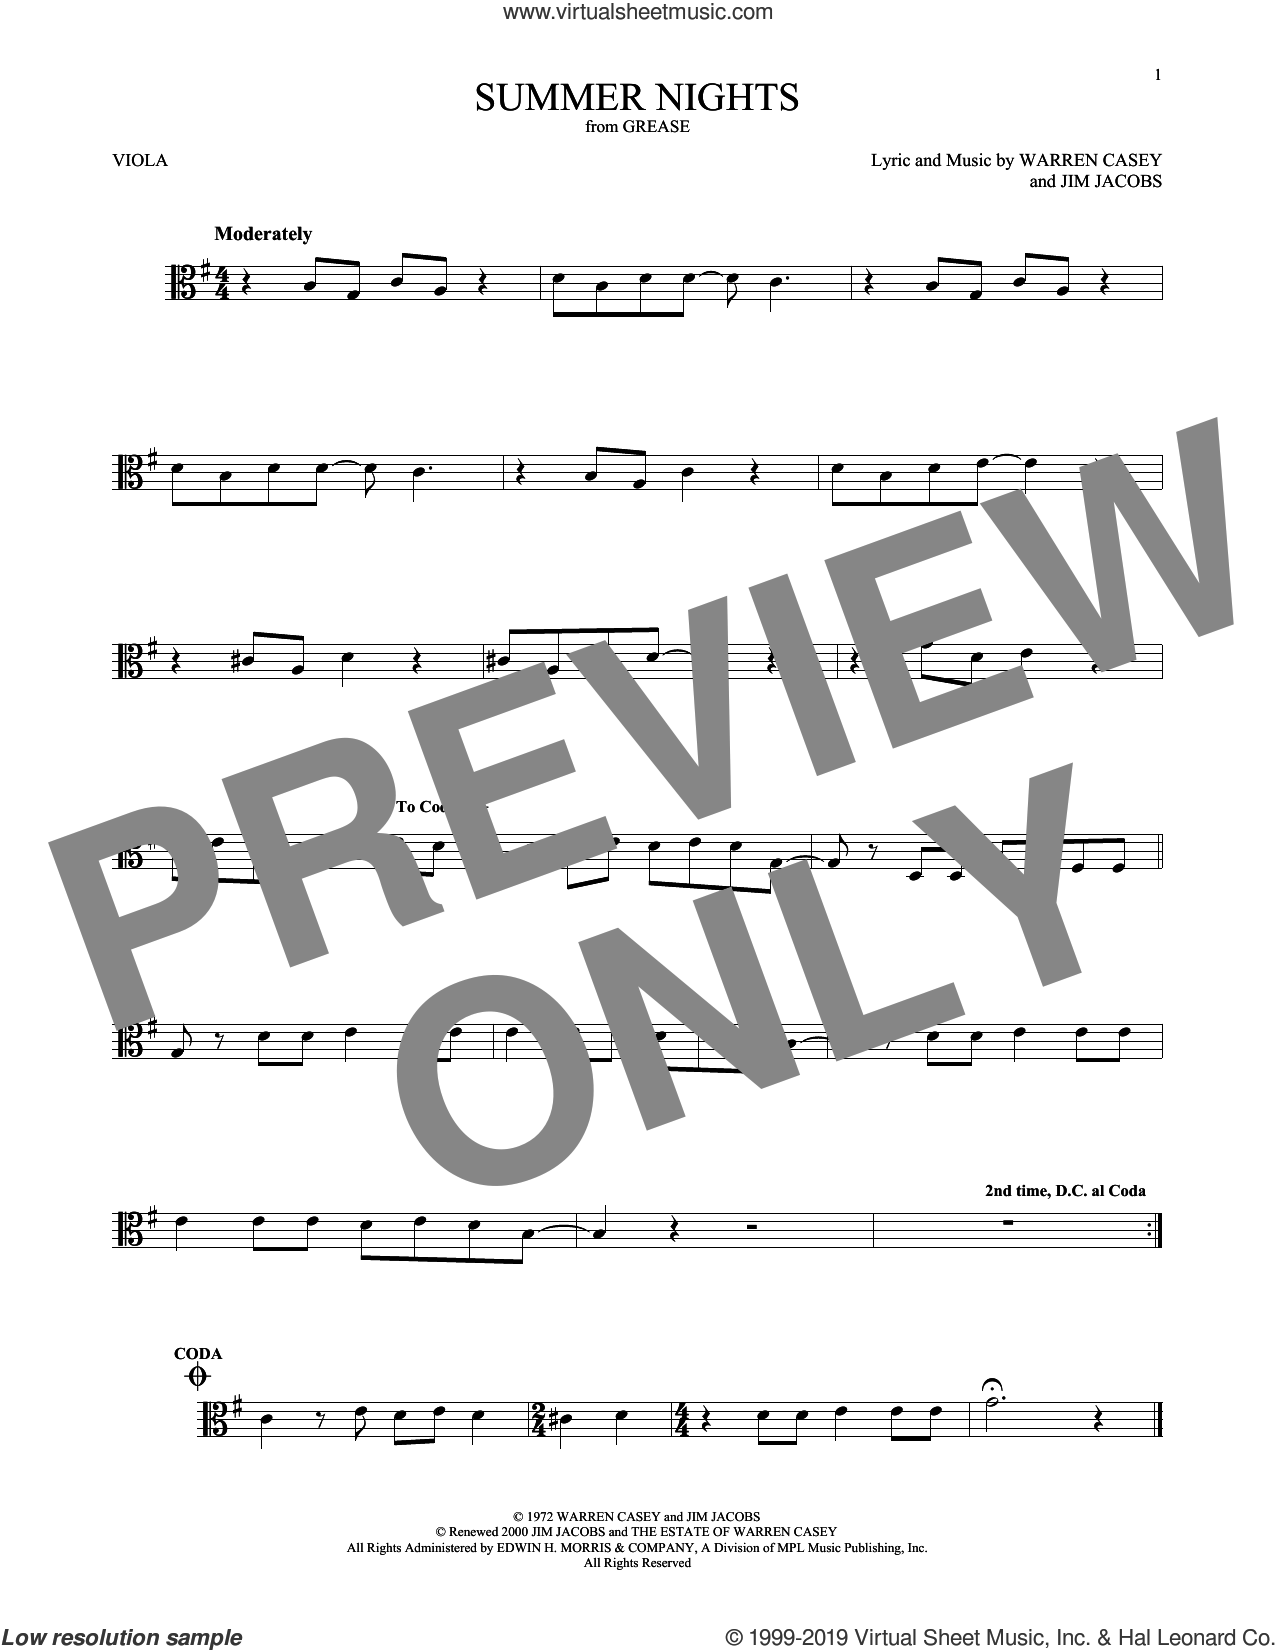 Summer Nights sheet music for viola solo by Jim Jacobs and Warren Casey, intermediate skill level